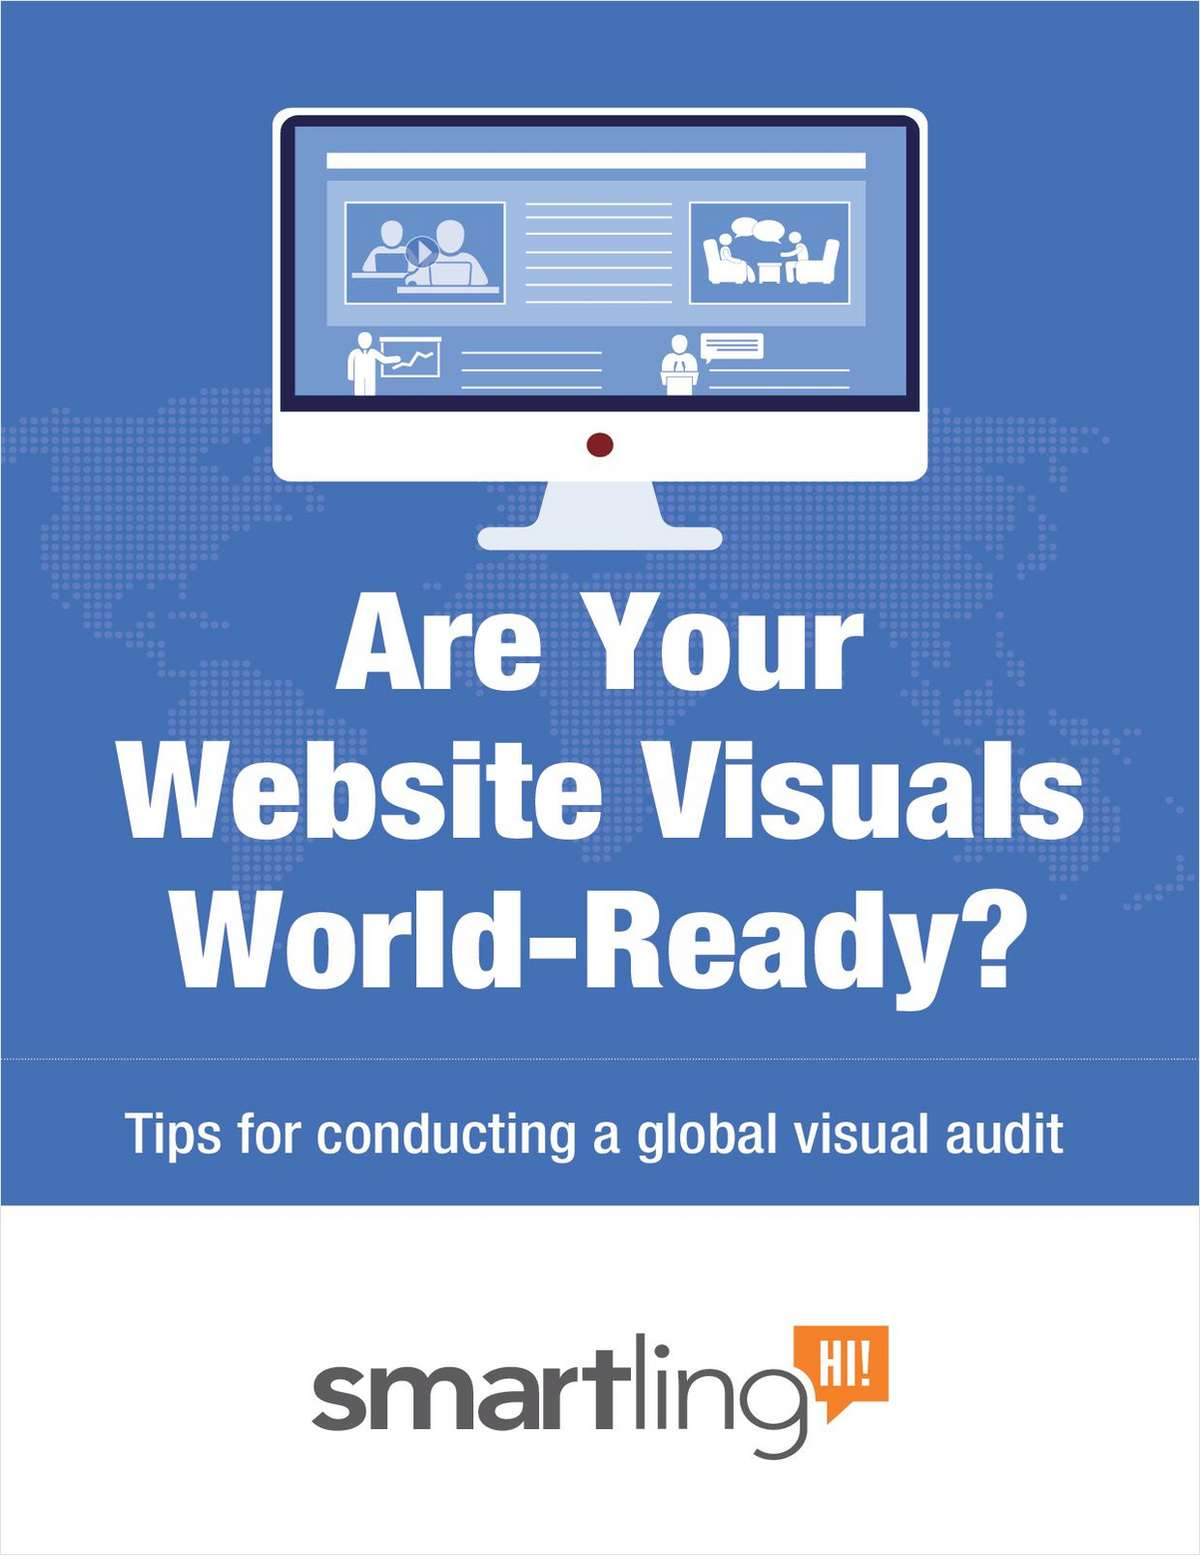 Are Your Website Visuals World-Ready?